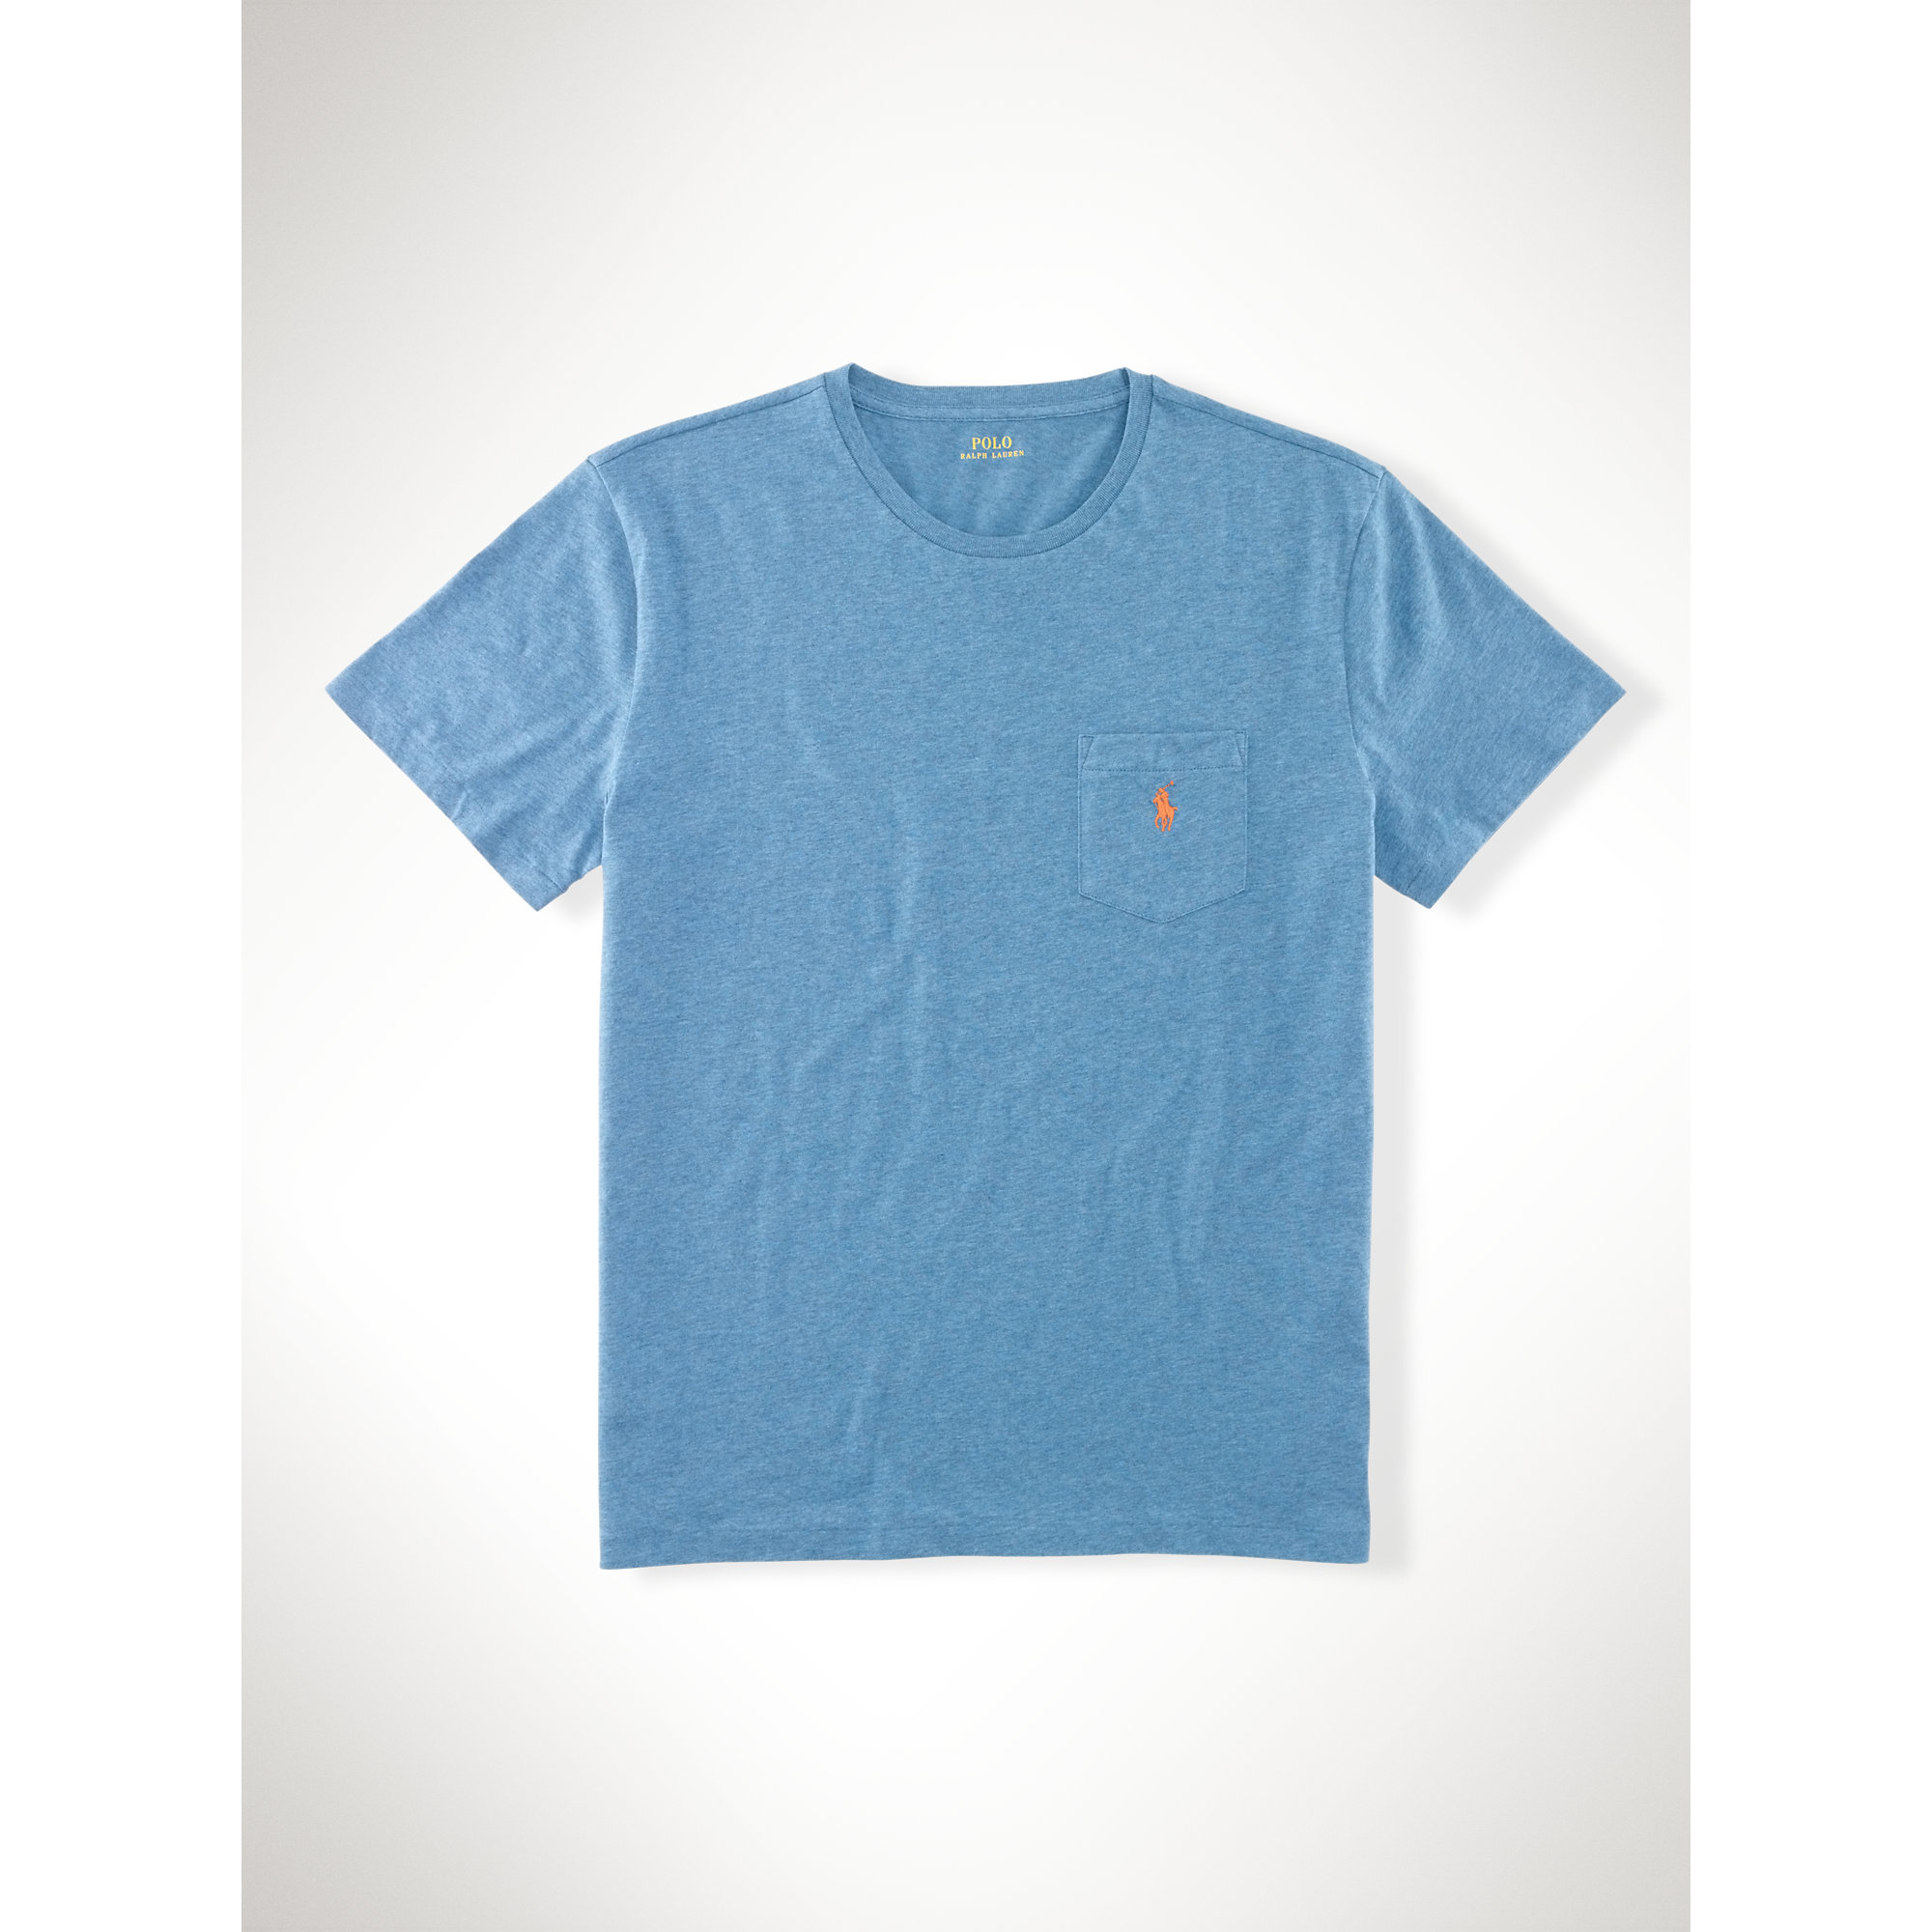 Polo ralph lauren classic fit cotton pocket tee in blue for Polo t shirts with pockets